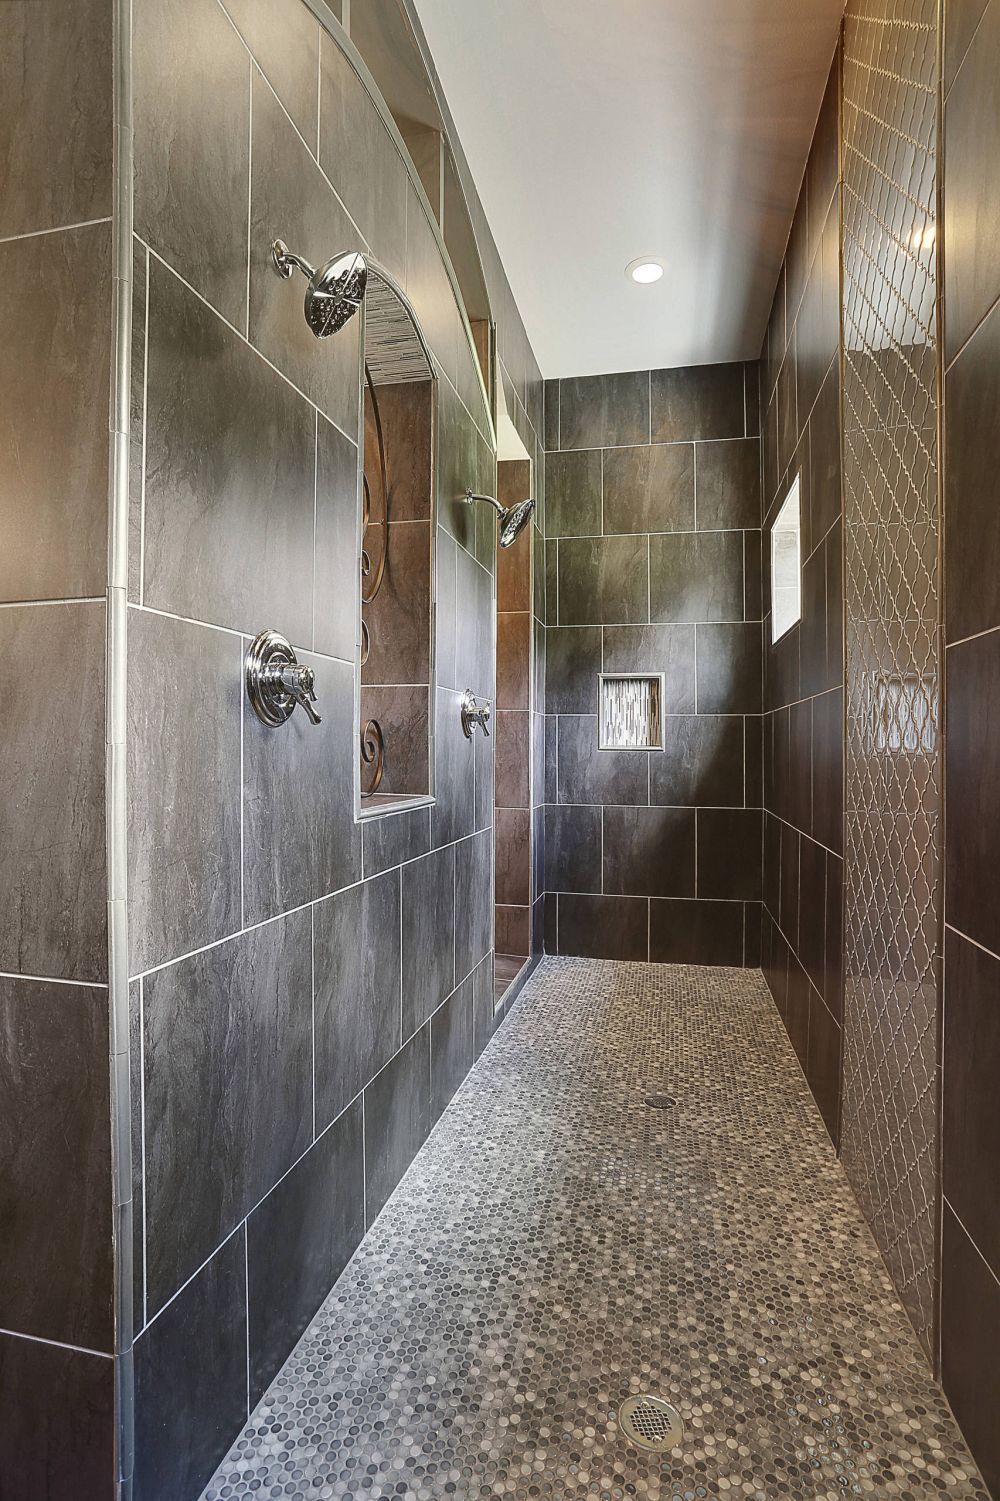 Best Kitchen Gallery: 10 Walk In Shower Designs To Upgrade Your Bathroom of Bathroom Shower Designs  on rachelxblog.com